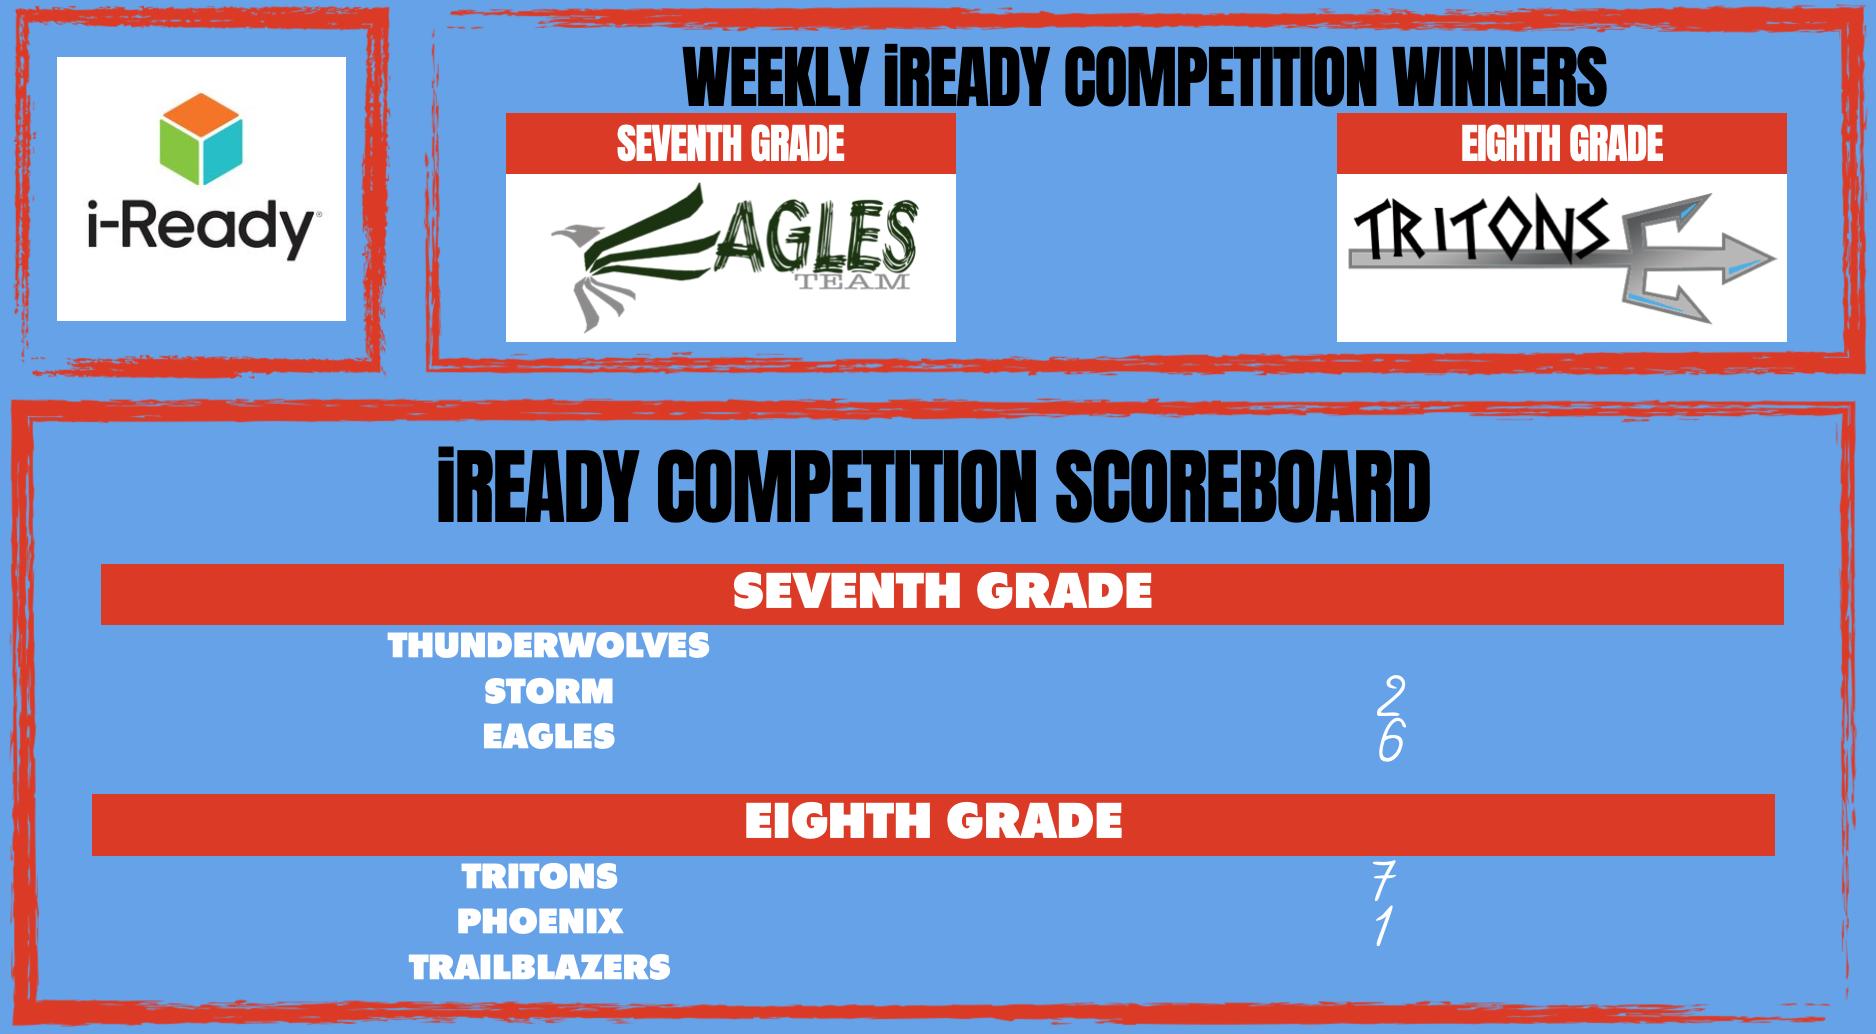 iReady Competition Scoreboard